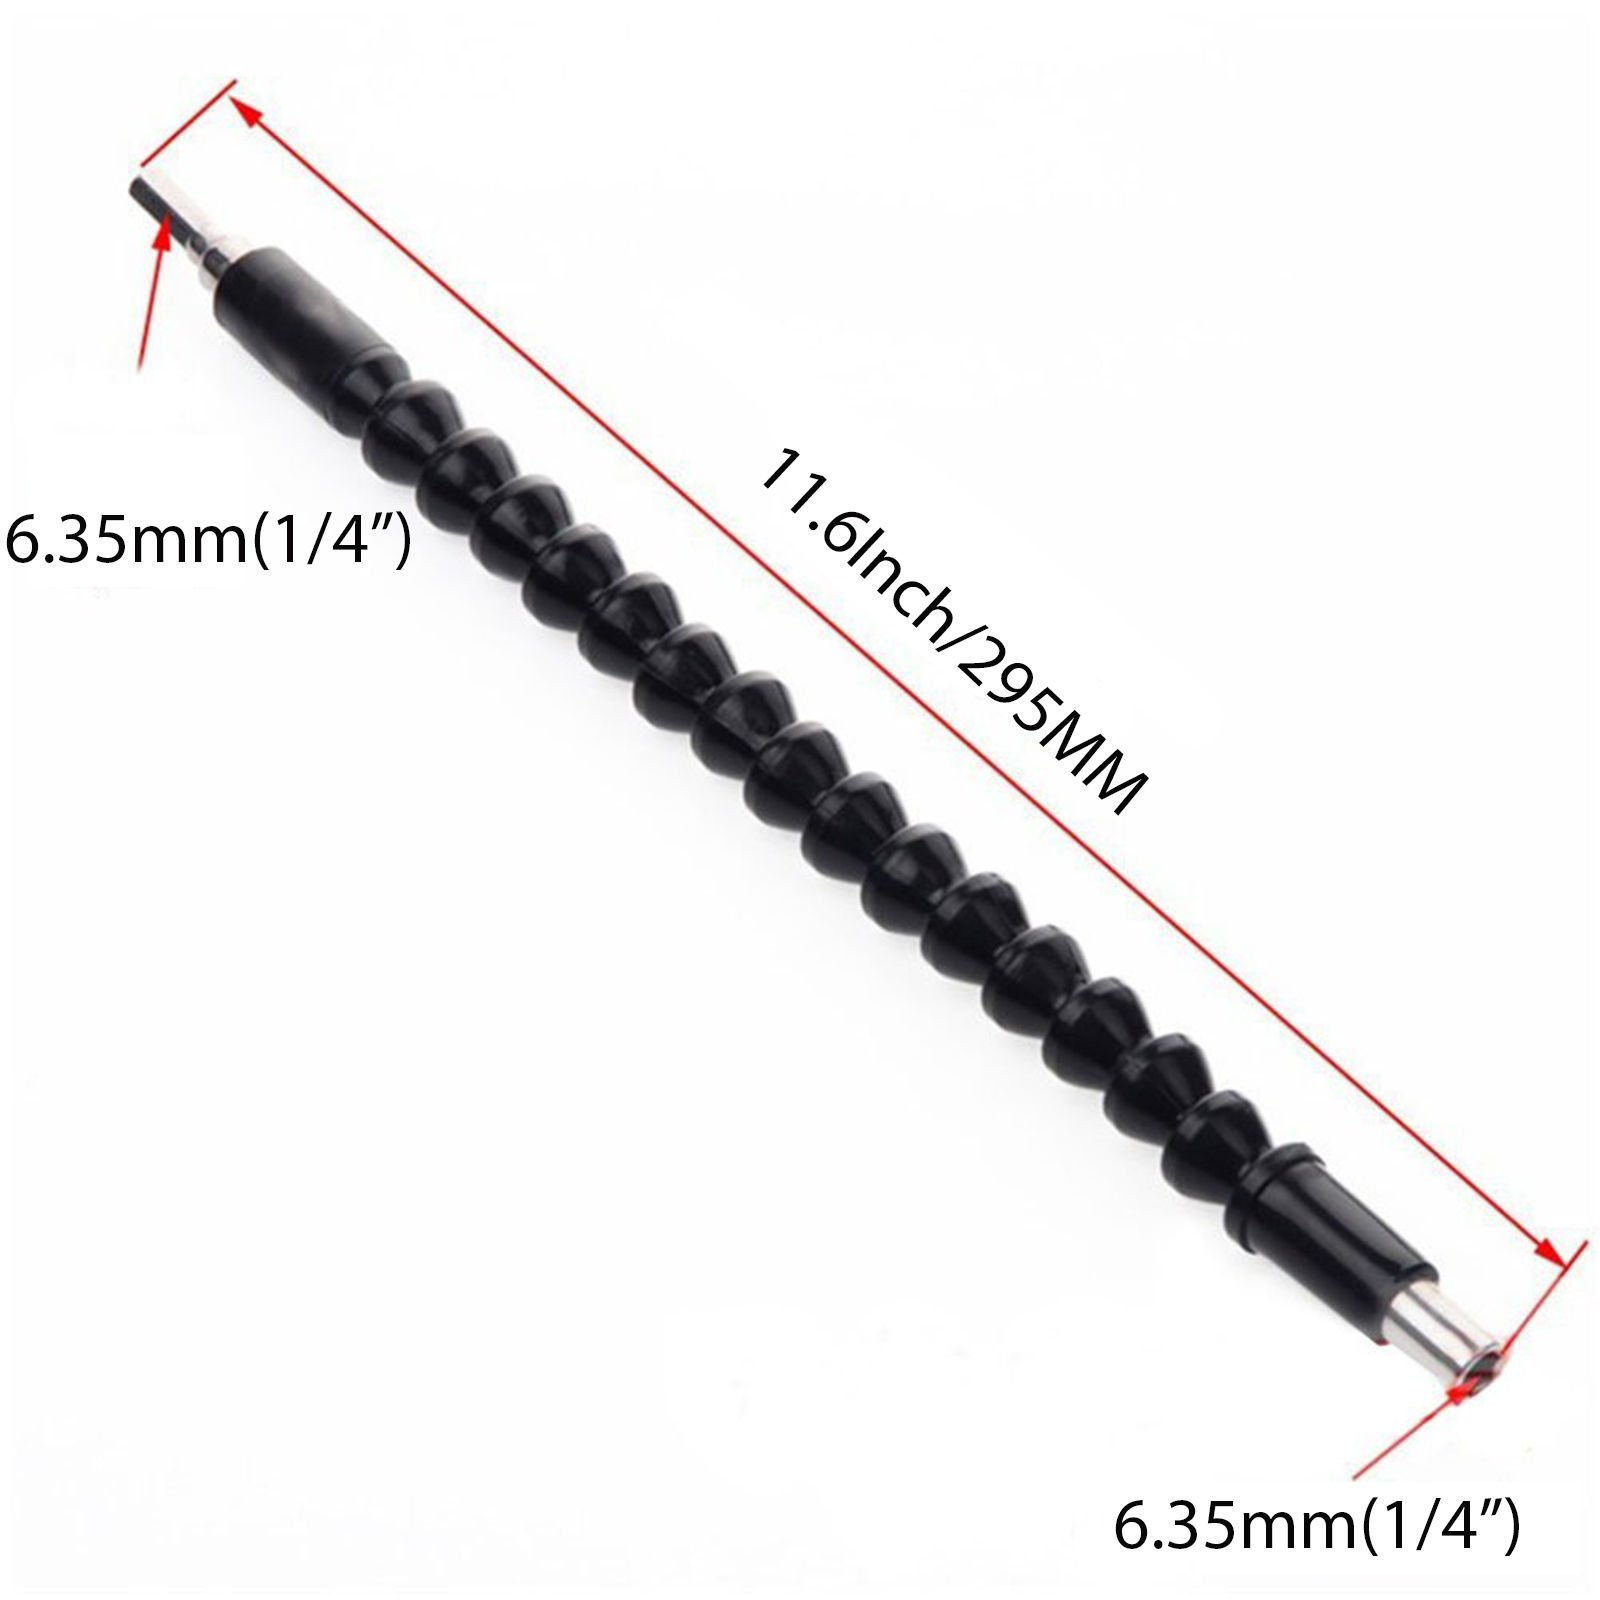 MiLanNuo Flexible Shaft Drill Bit Extension Holder Connecting Link 12'' Cobra Bit Black by MiLanNuo (Image #8)